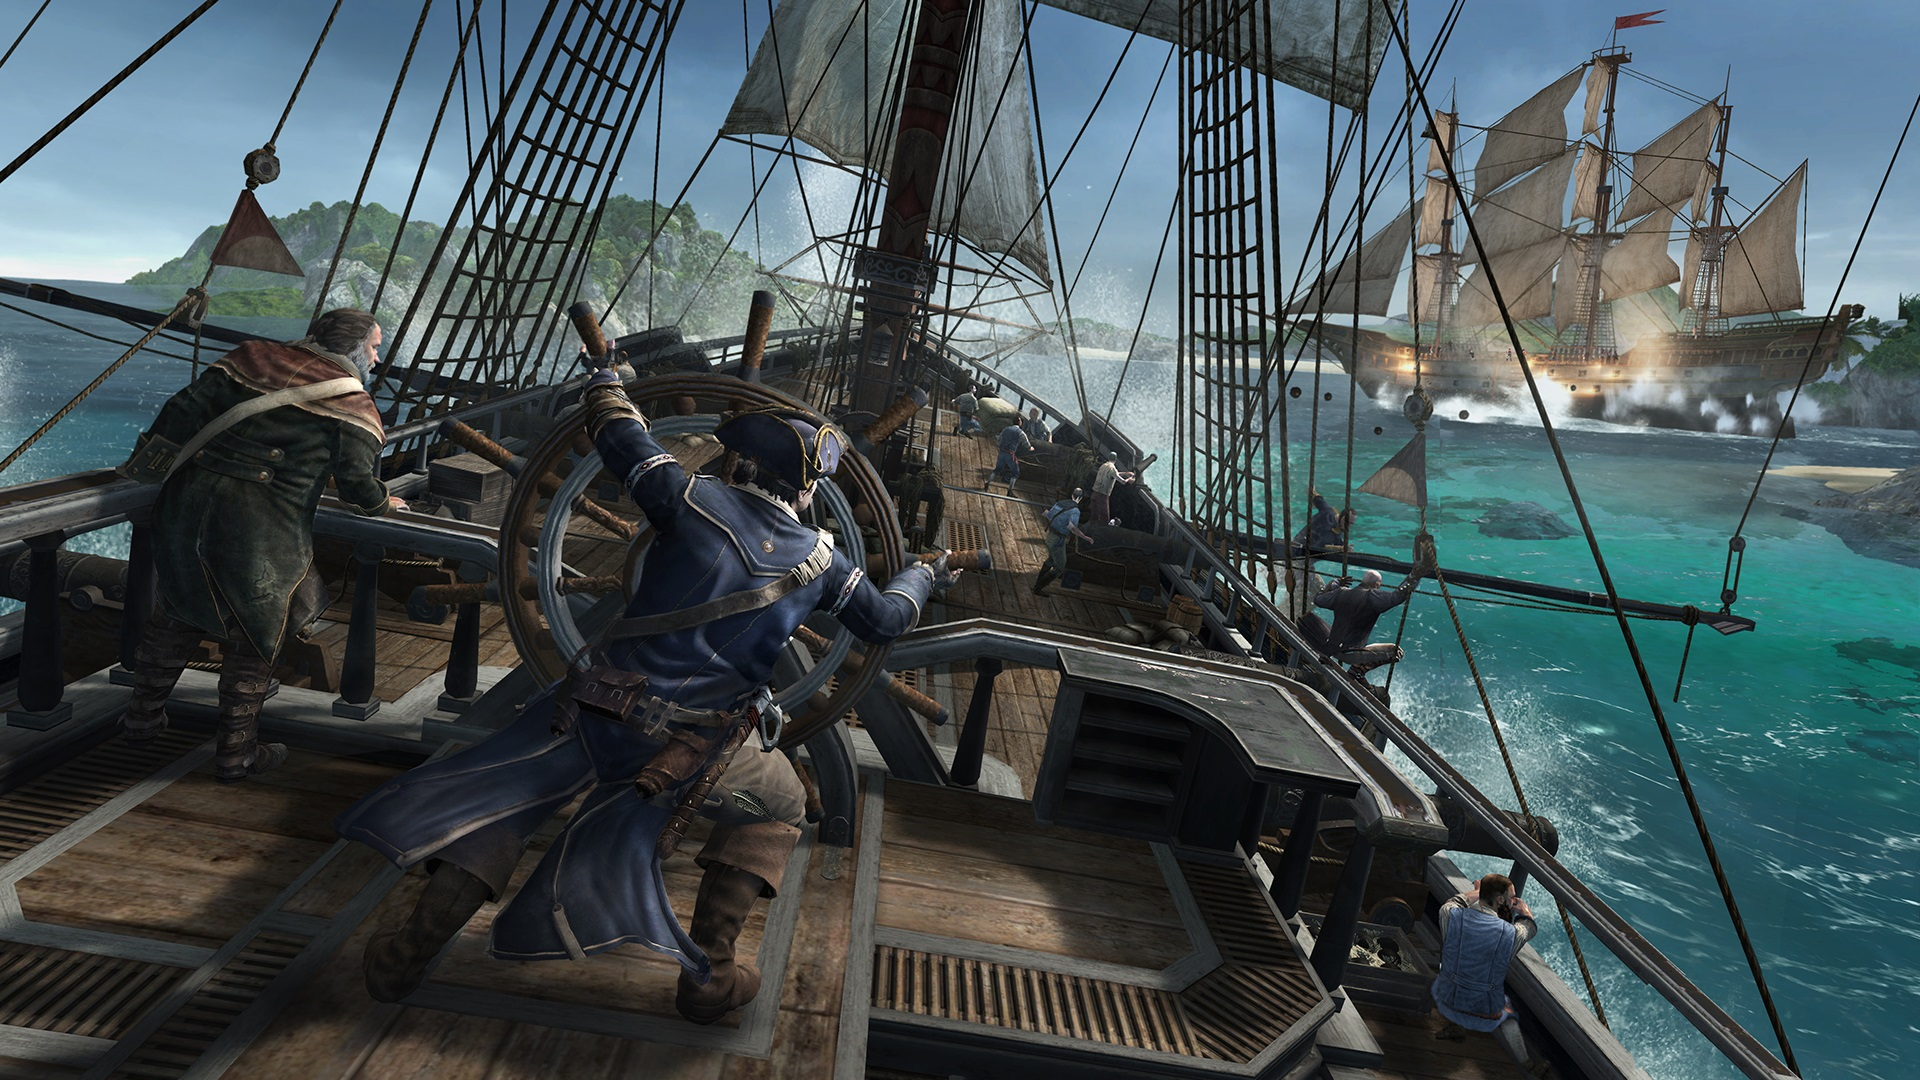 Media asset in full size related to 3dfxzone.it news item entitled as follows: Potrebbe chiamarsi Origins il prossimo game della serie Assassin's Creed   Image Name: news26285_Assassin-s-Creed-Screenshot_1.jpg